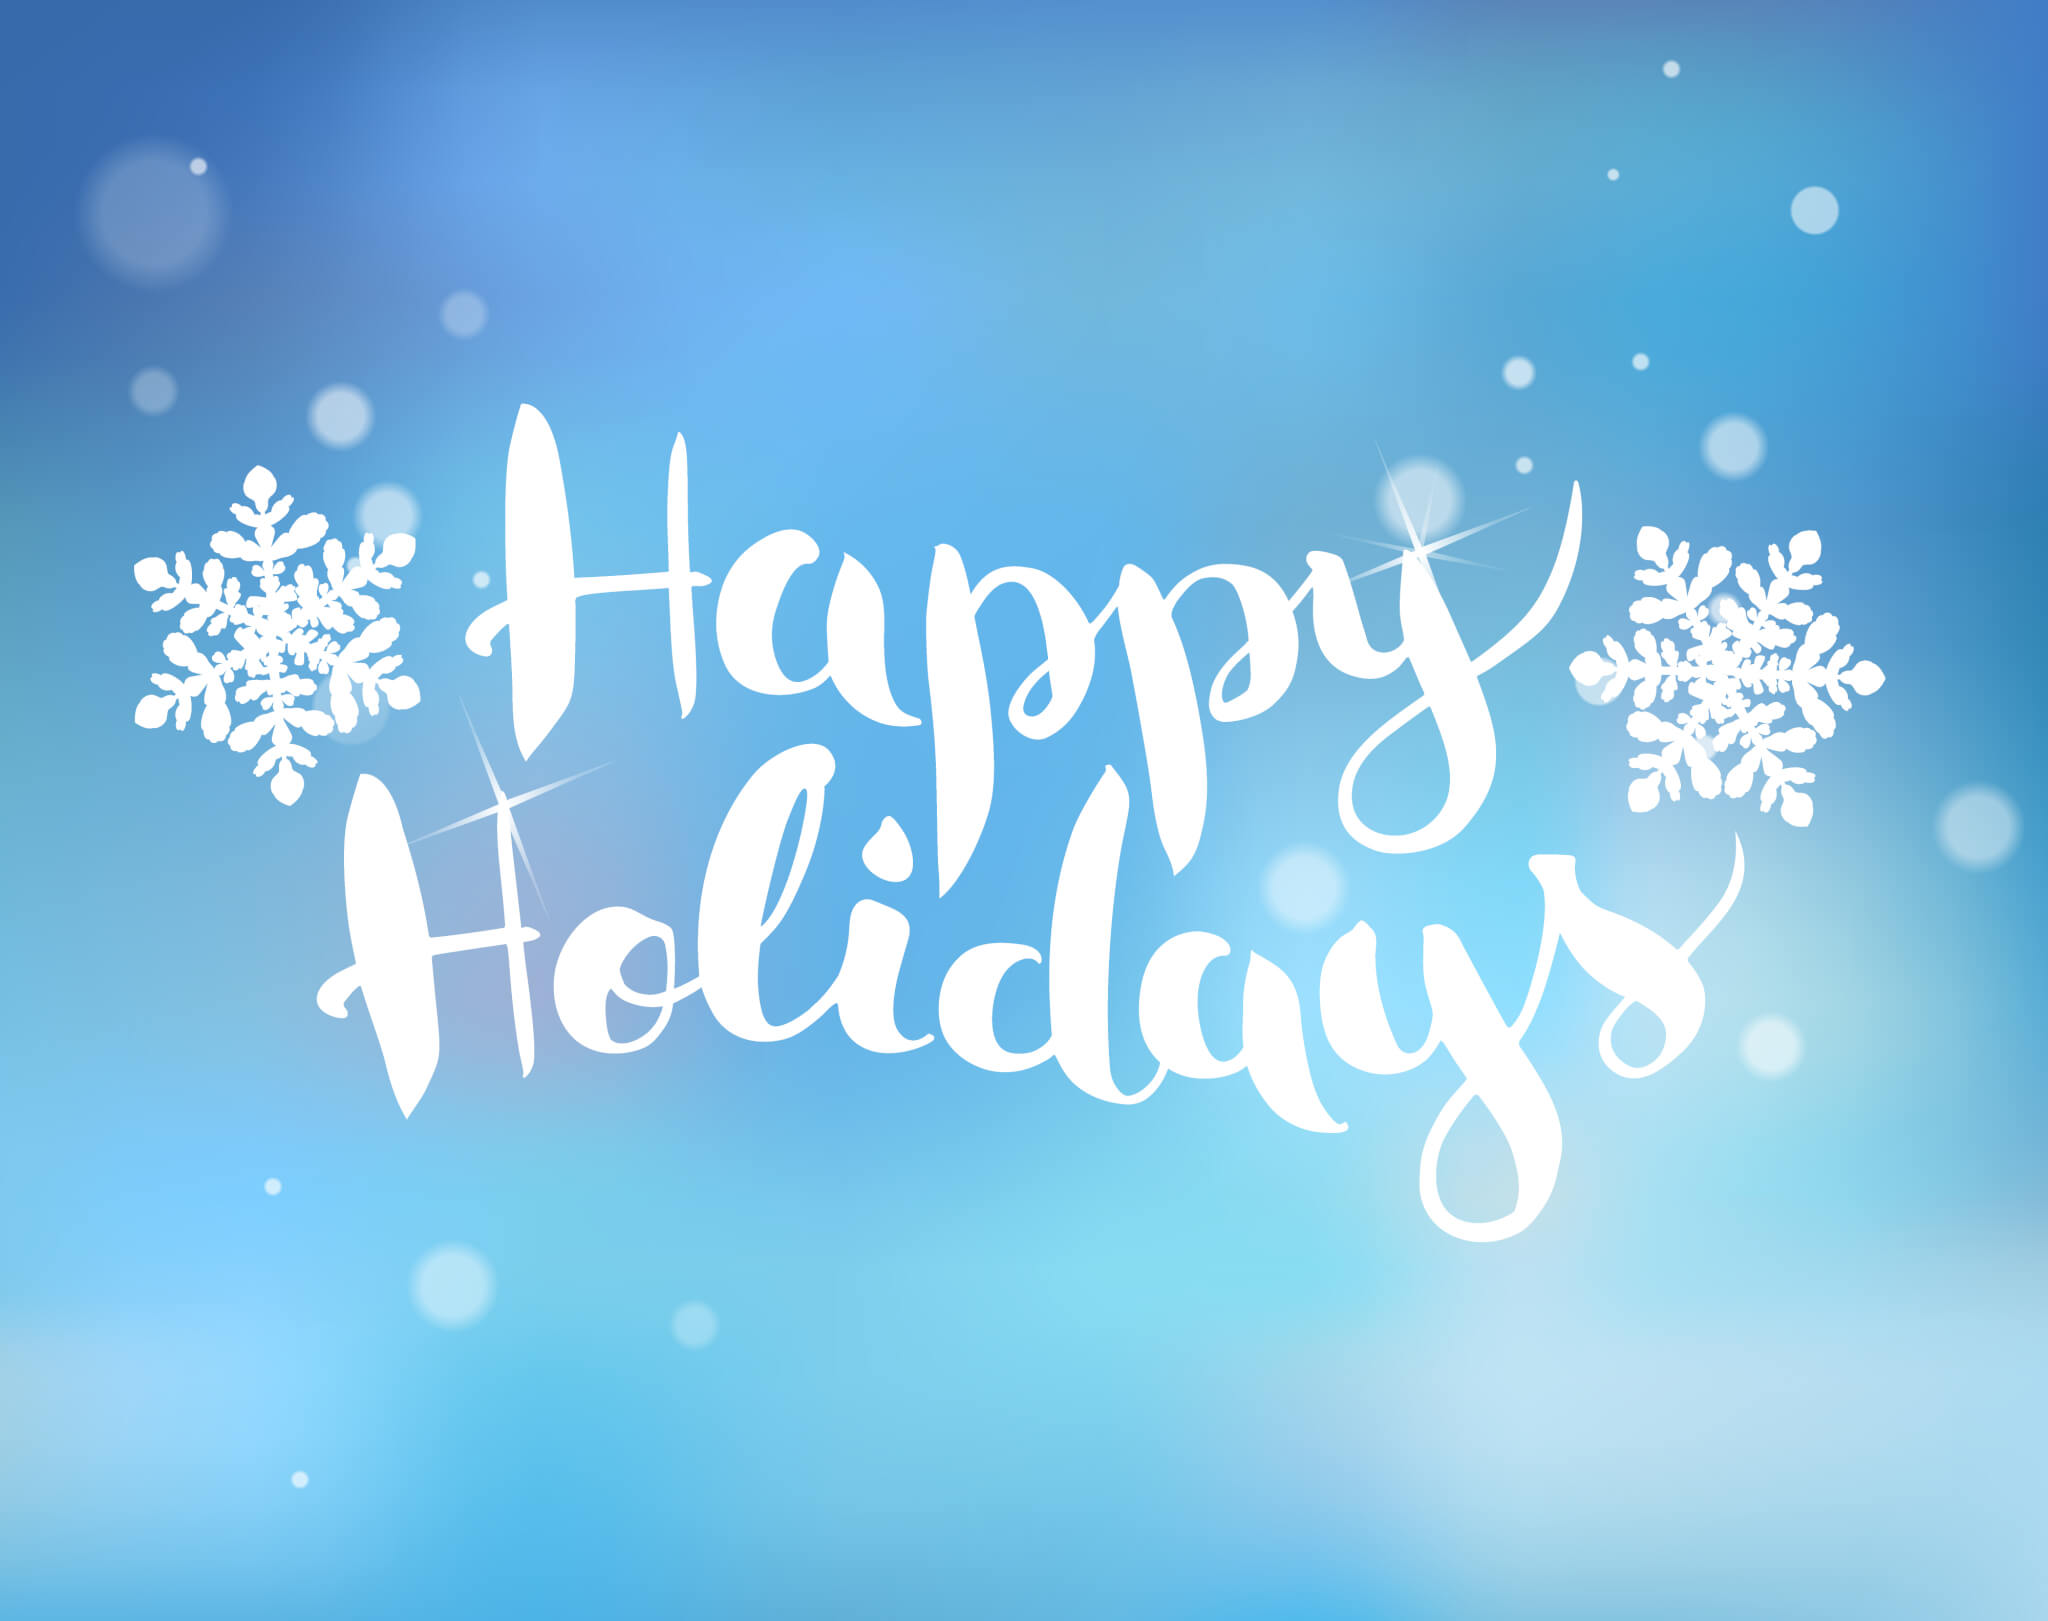 Happy-Holidays-Blue.jpg